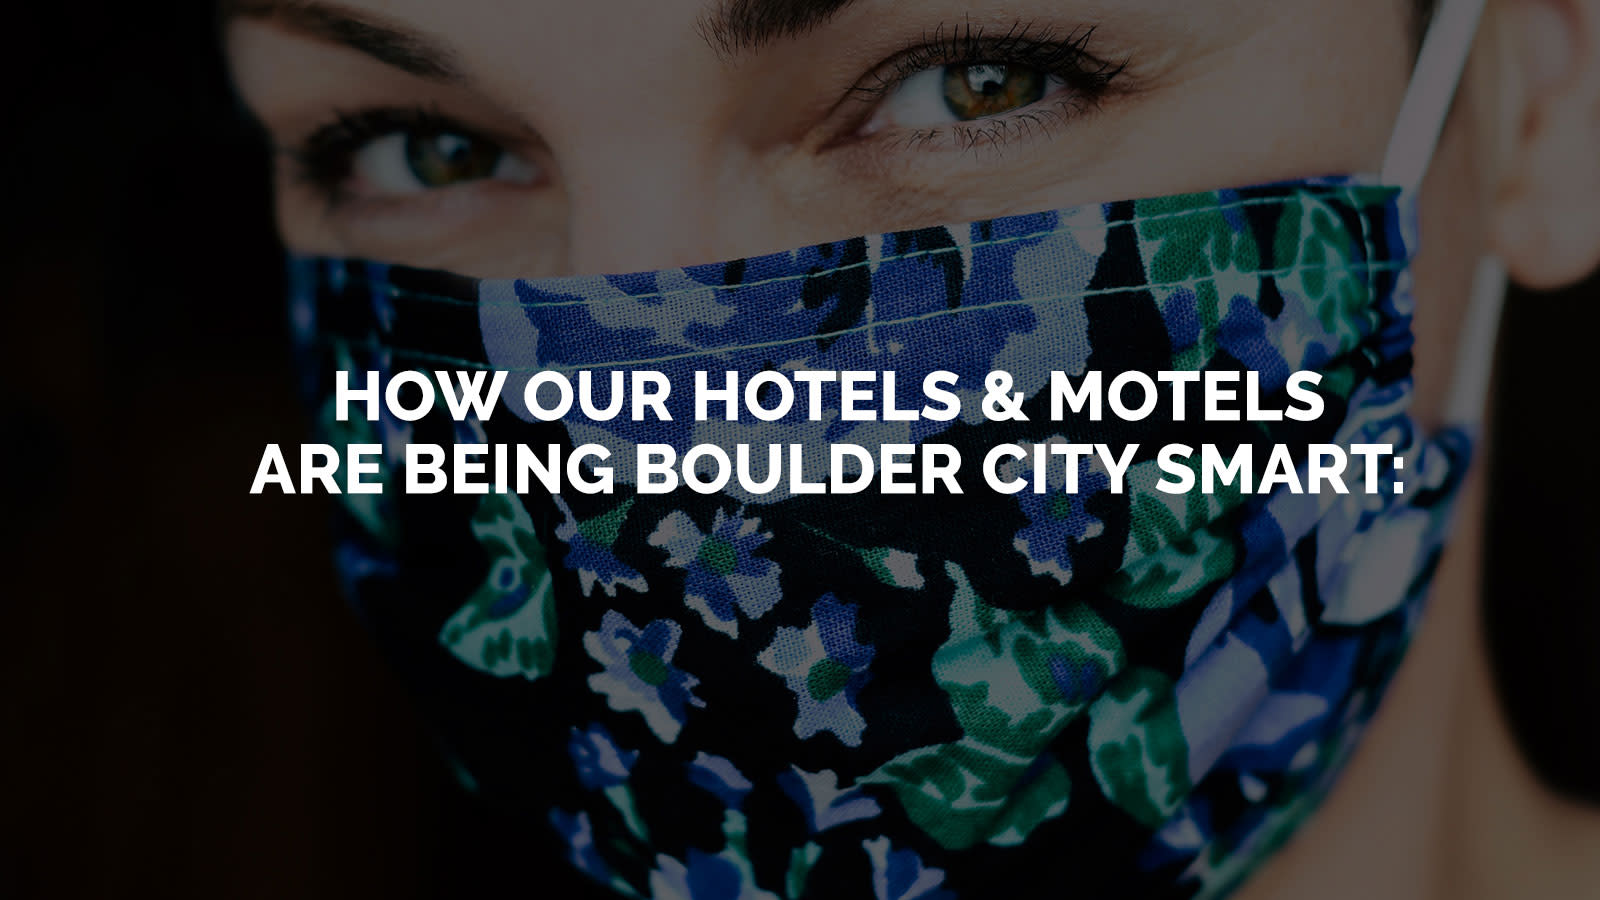 How Our Hotels & Motels Are Being Boulder City Smart